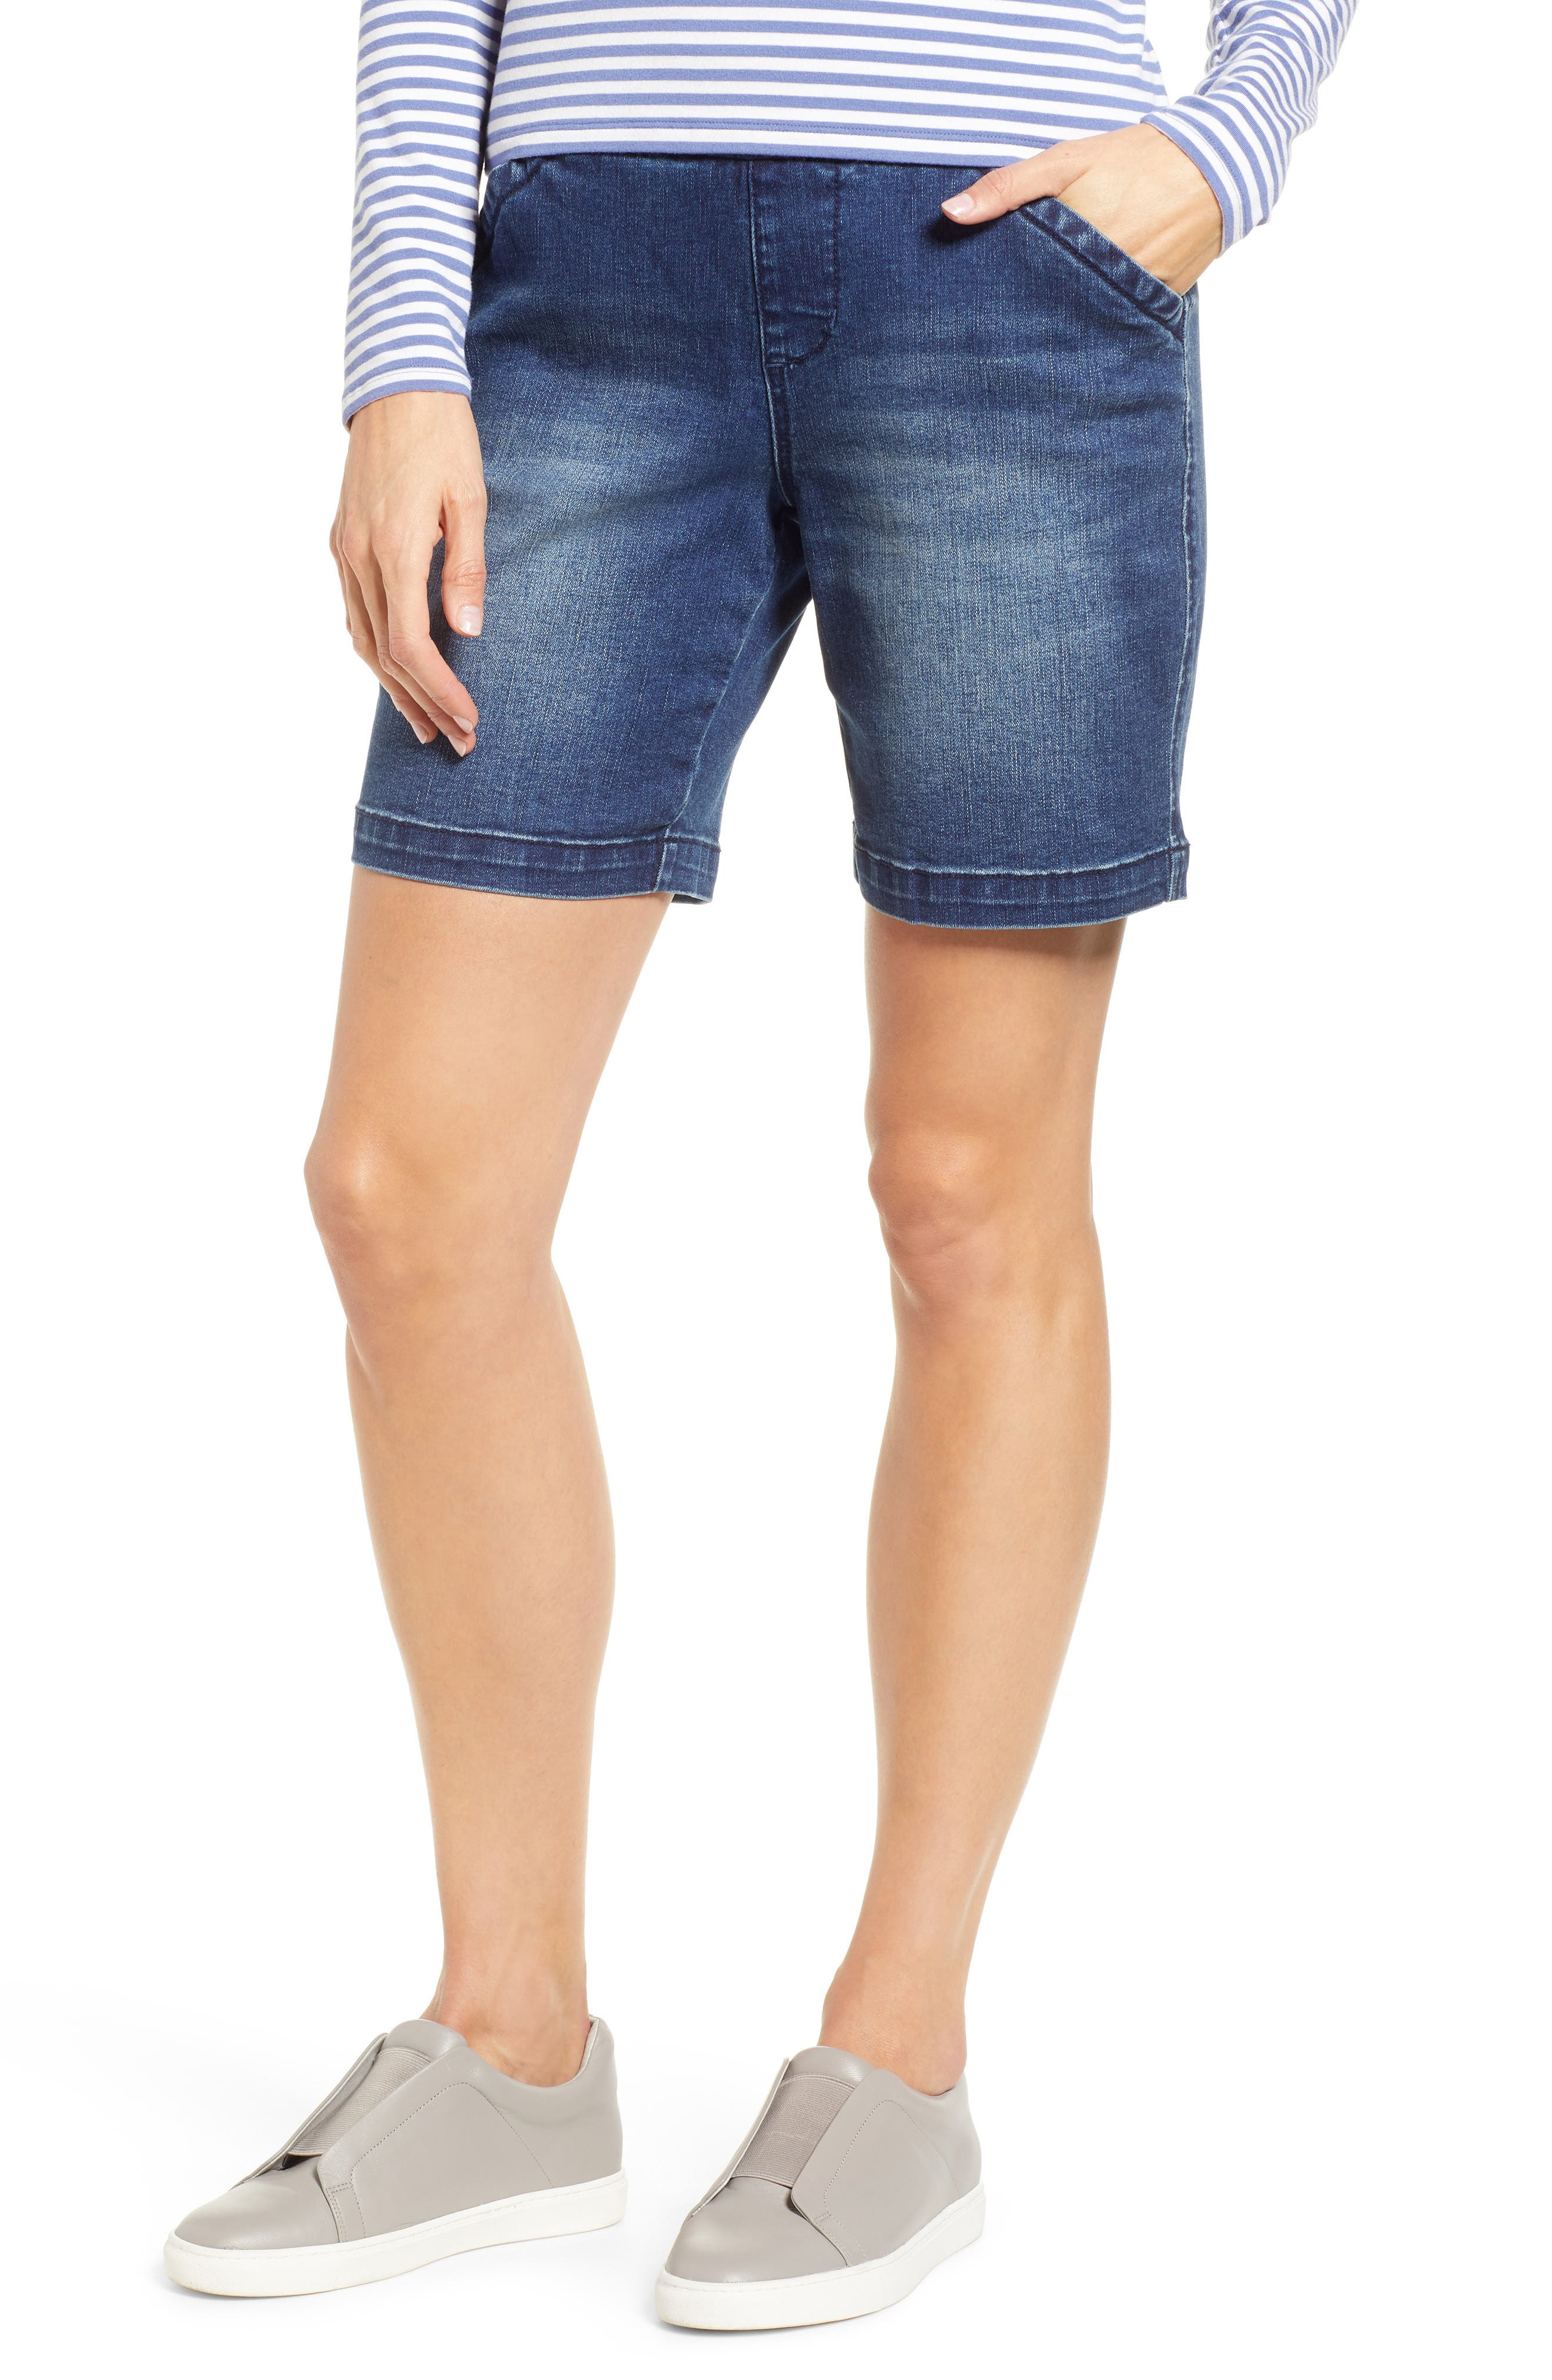 Petite Women's Jag Jeans Gracie Stretch Denim Shorts